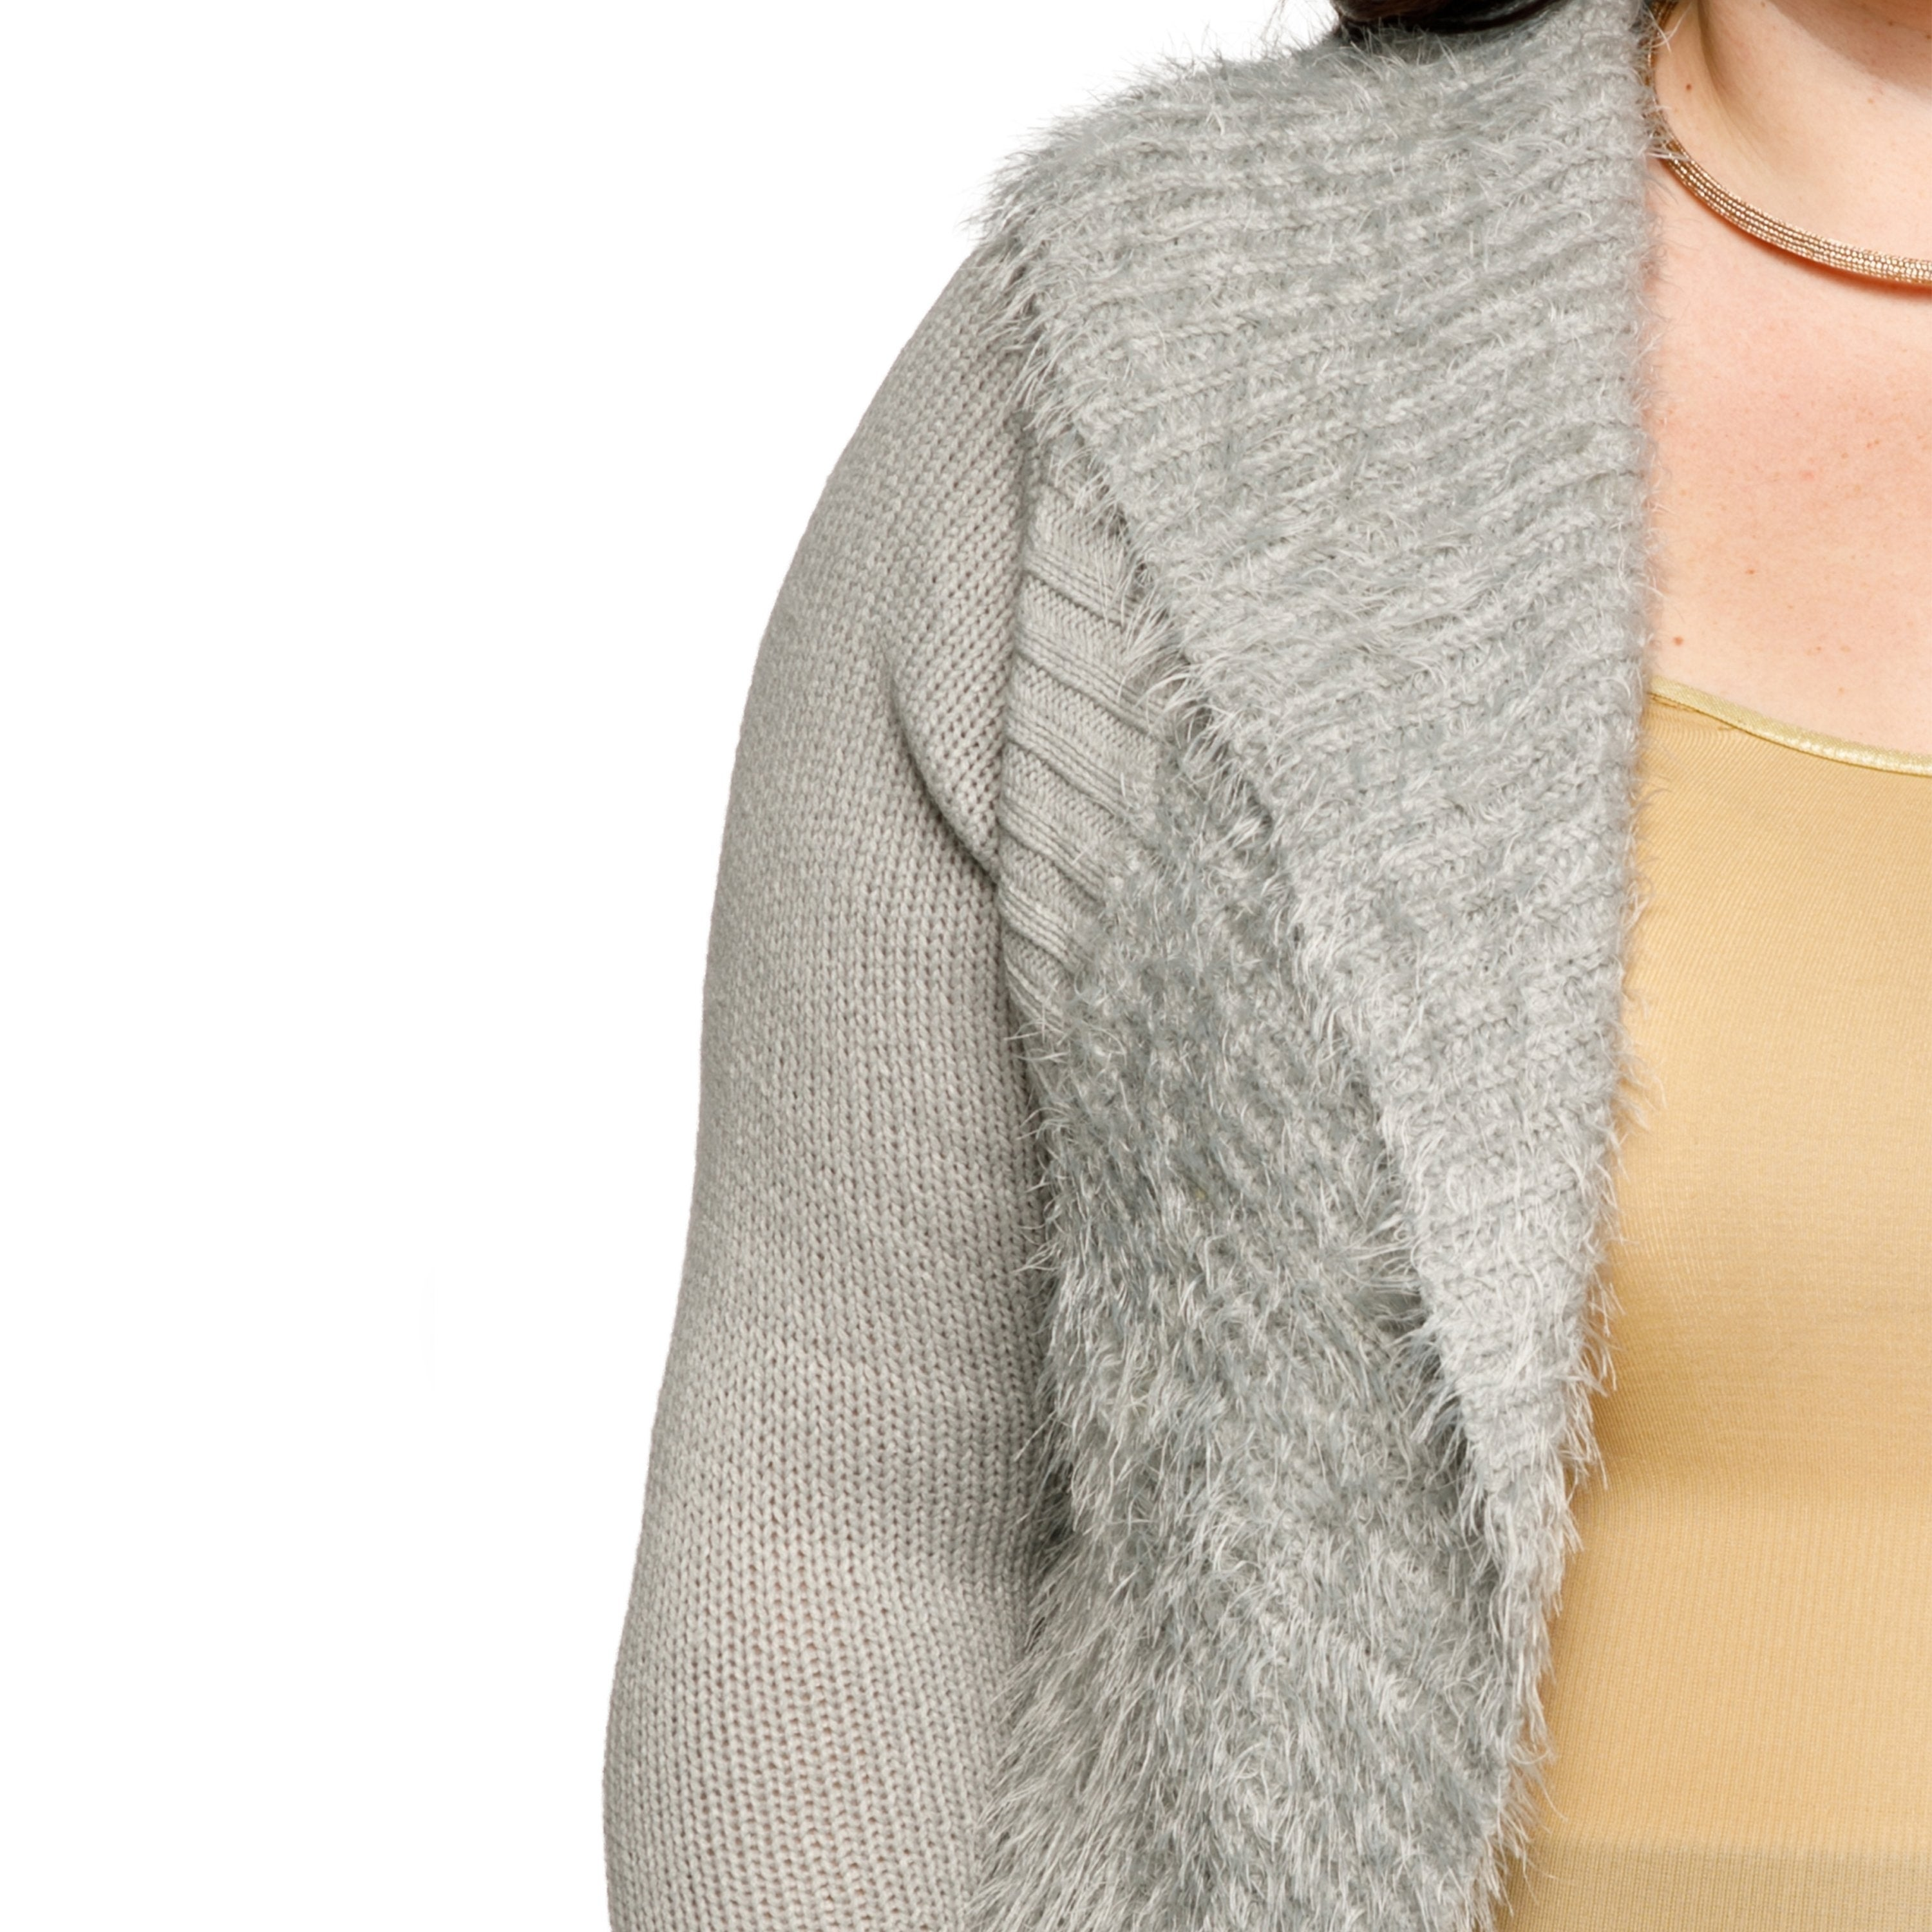 04a4e50db43d3 Shop Xehar Womens Plus Size Fuzzy Cocoon Open Front Cardigan Sweater - Free  Shipping On Orders Over  45 - Overstock.com - 18150659